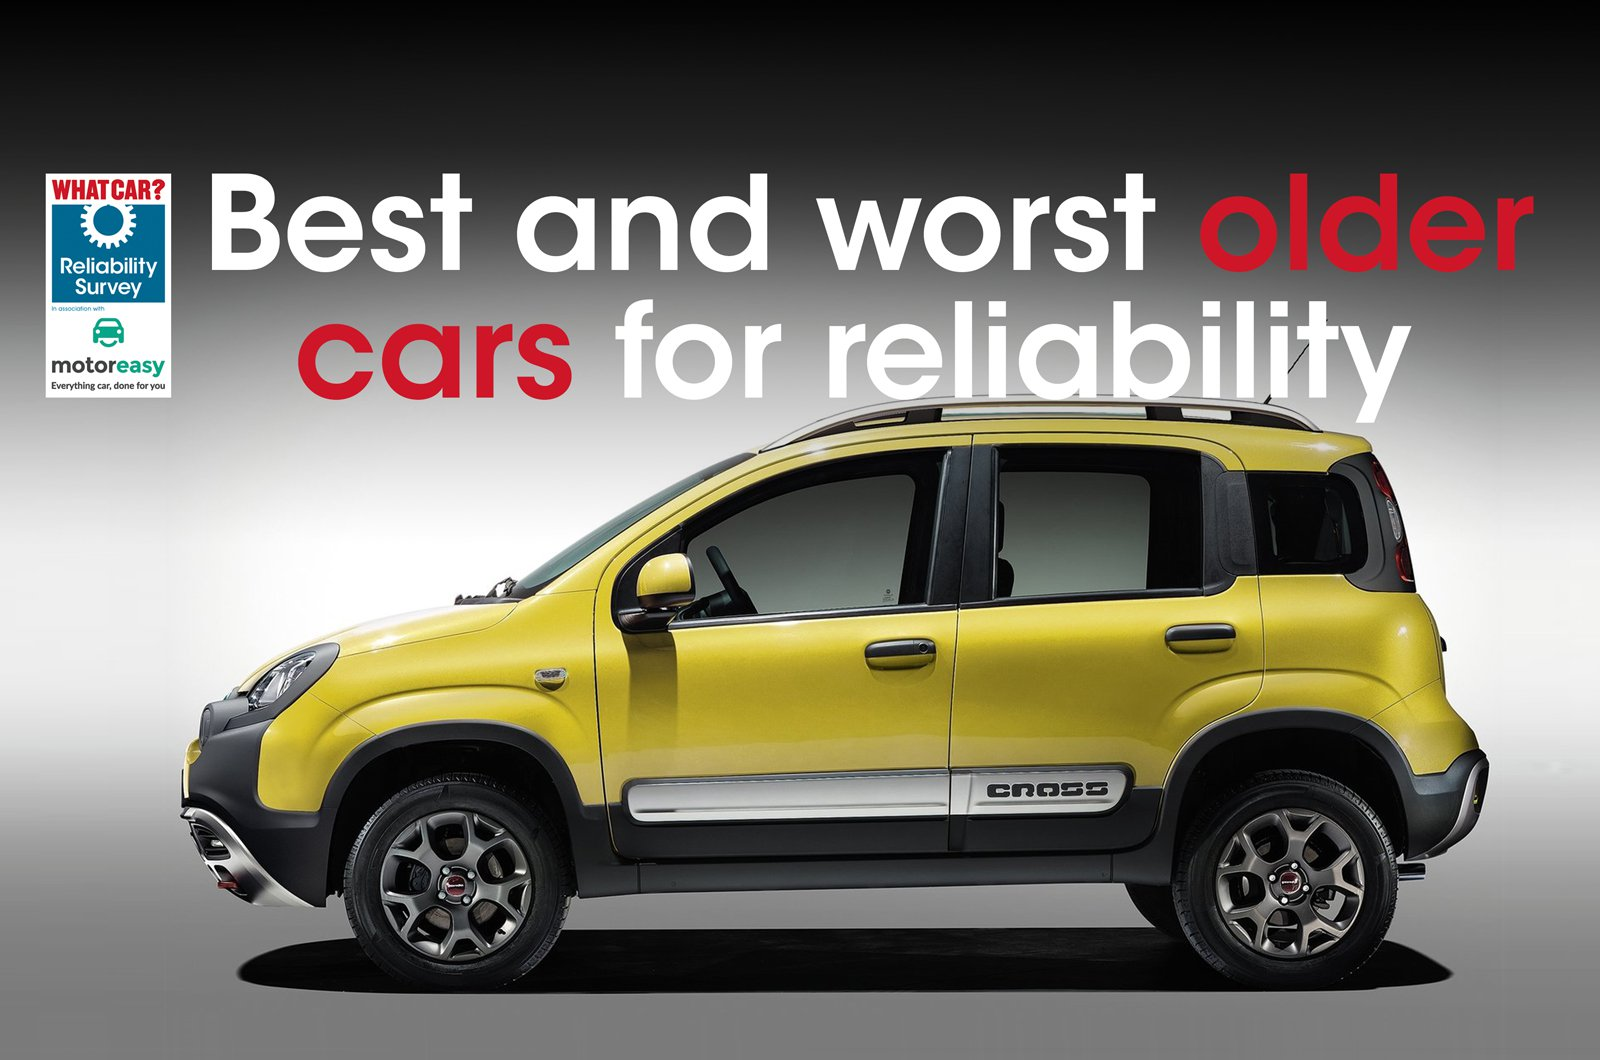 Best and worst older cars for reliability